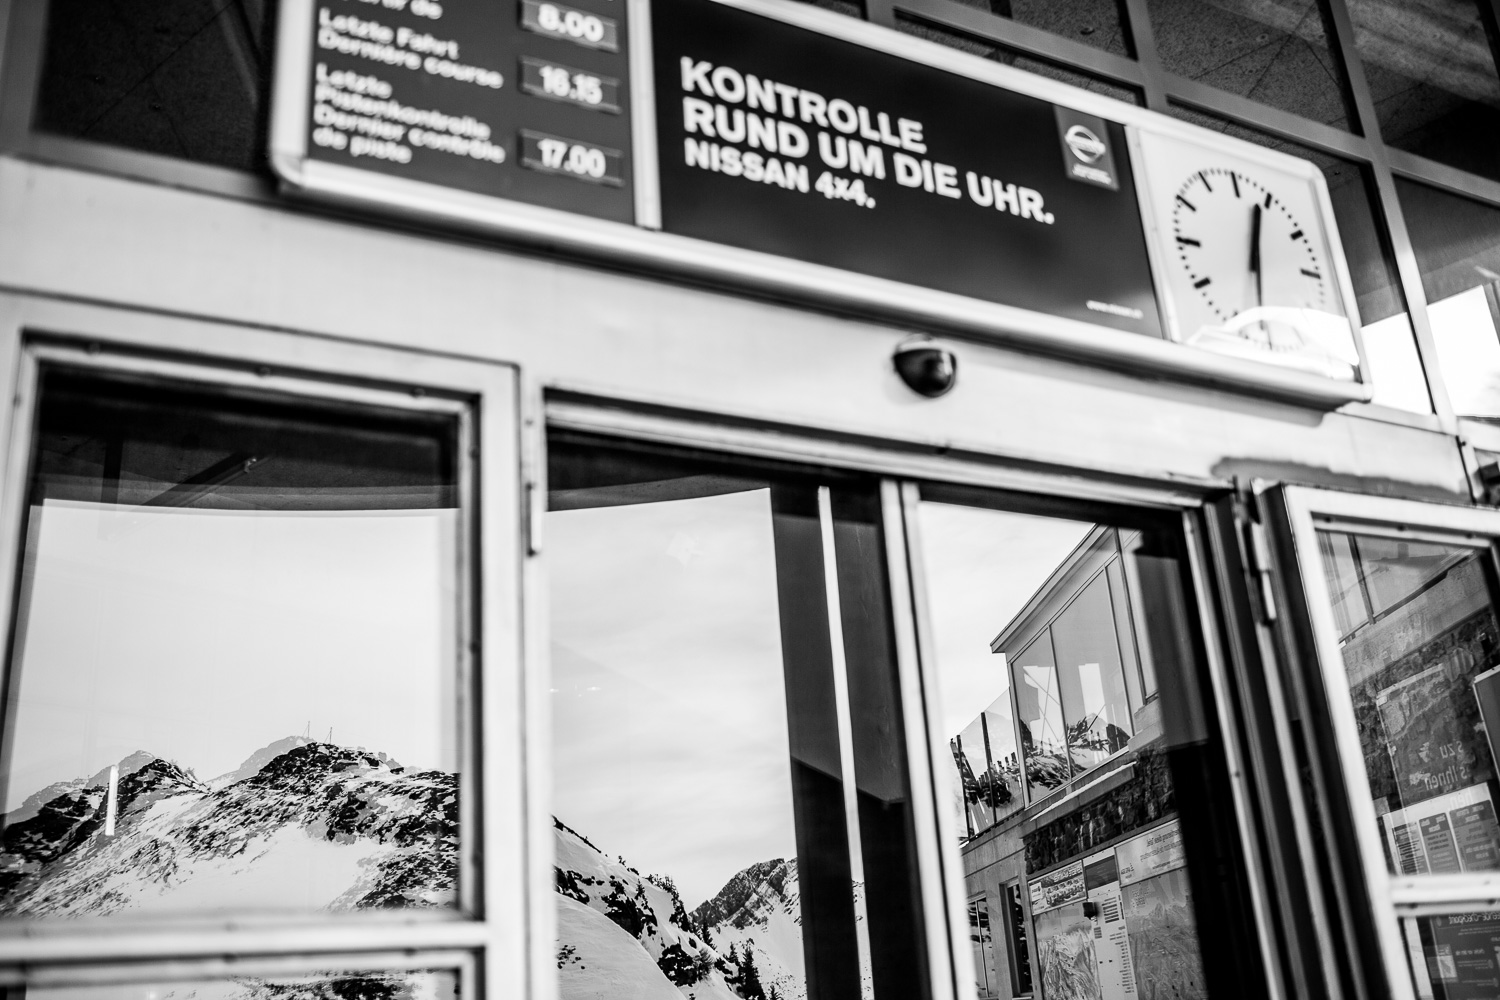 Saison-Opening-Flumserberg-Reportage